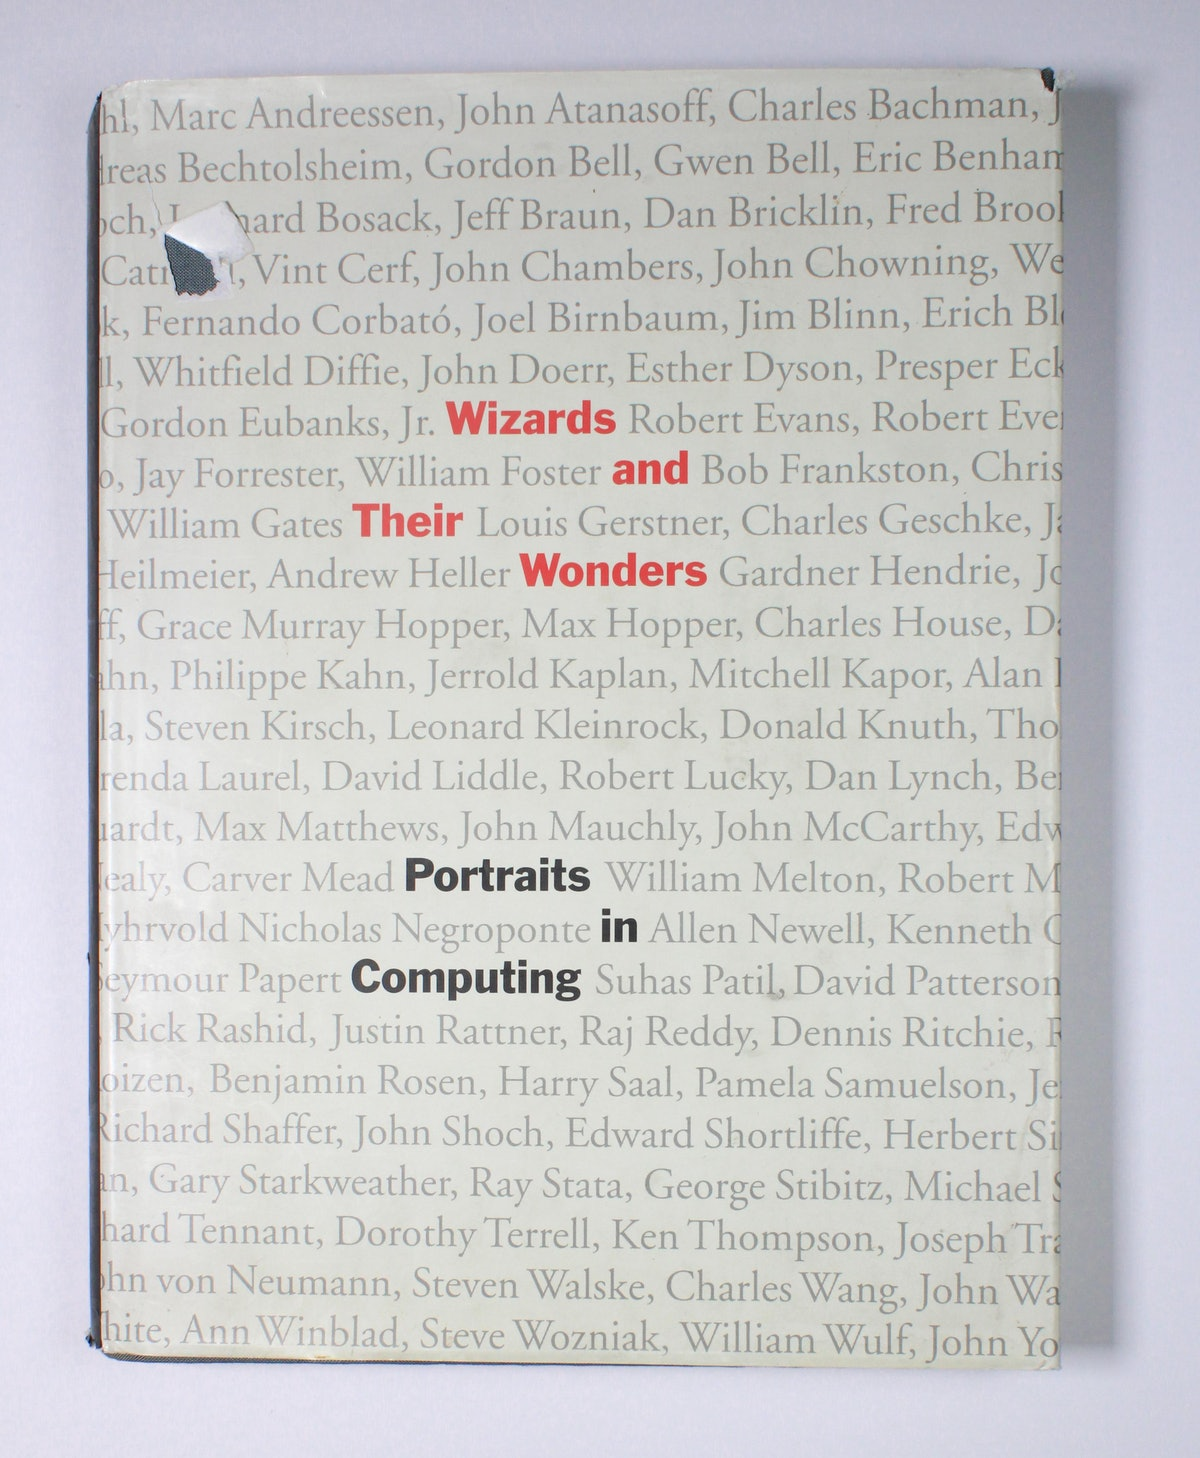 Wizards and Their Wonders: Portraits in Computing